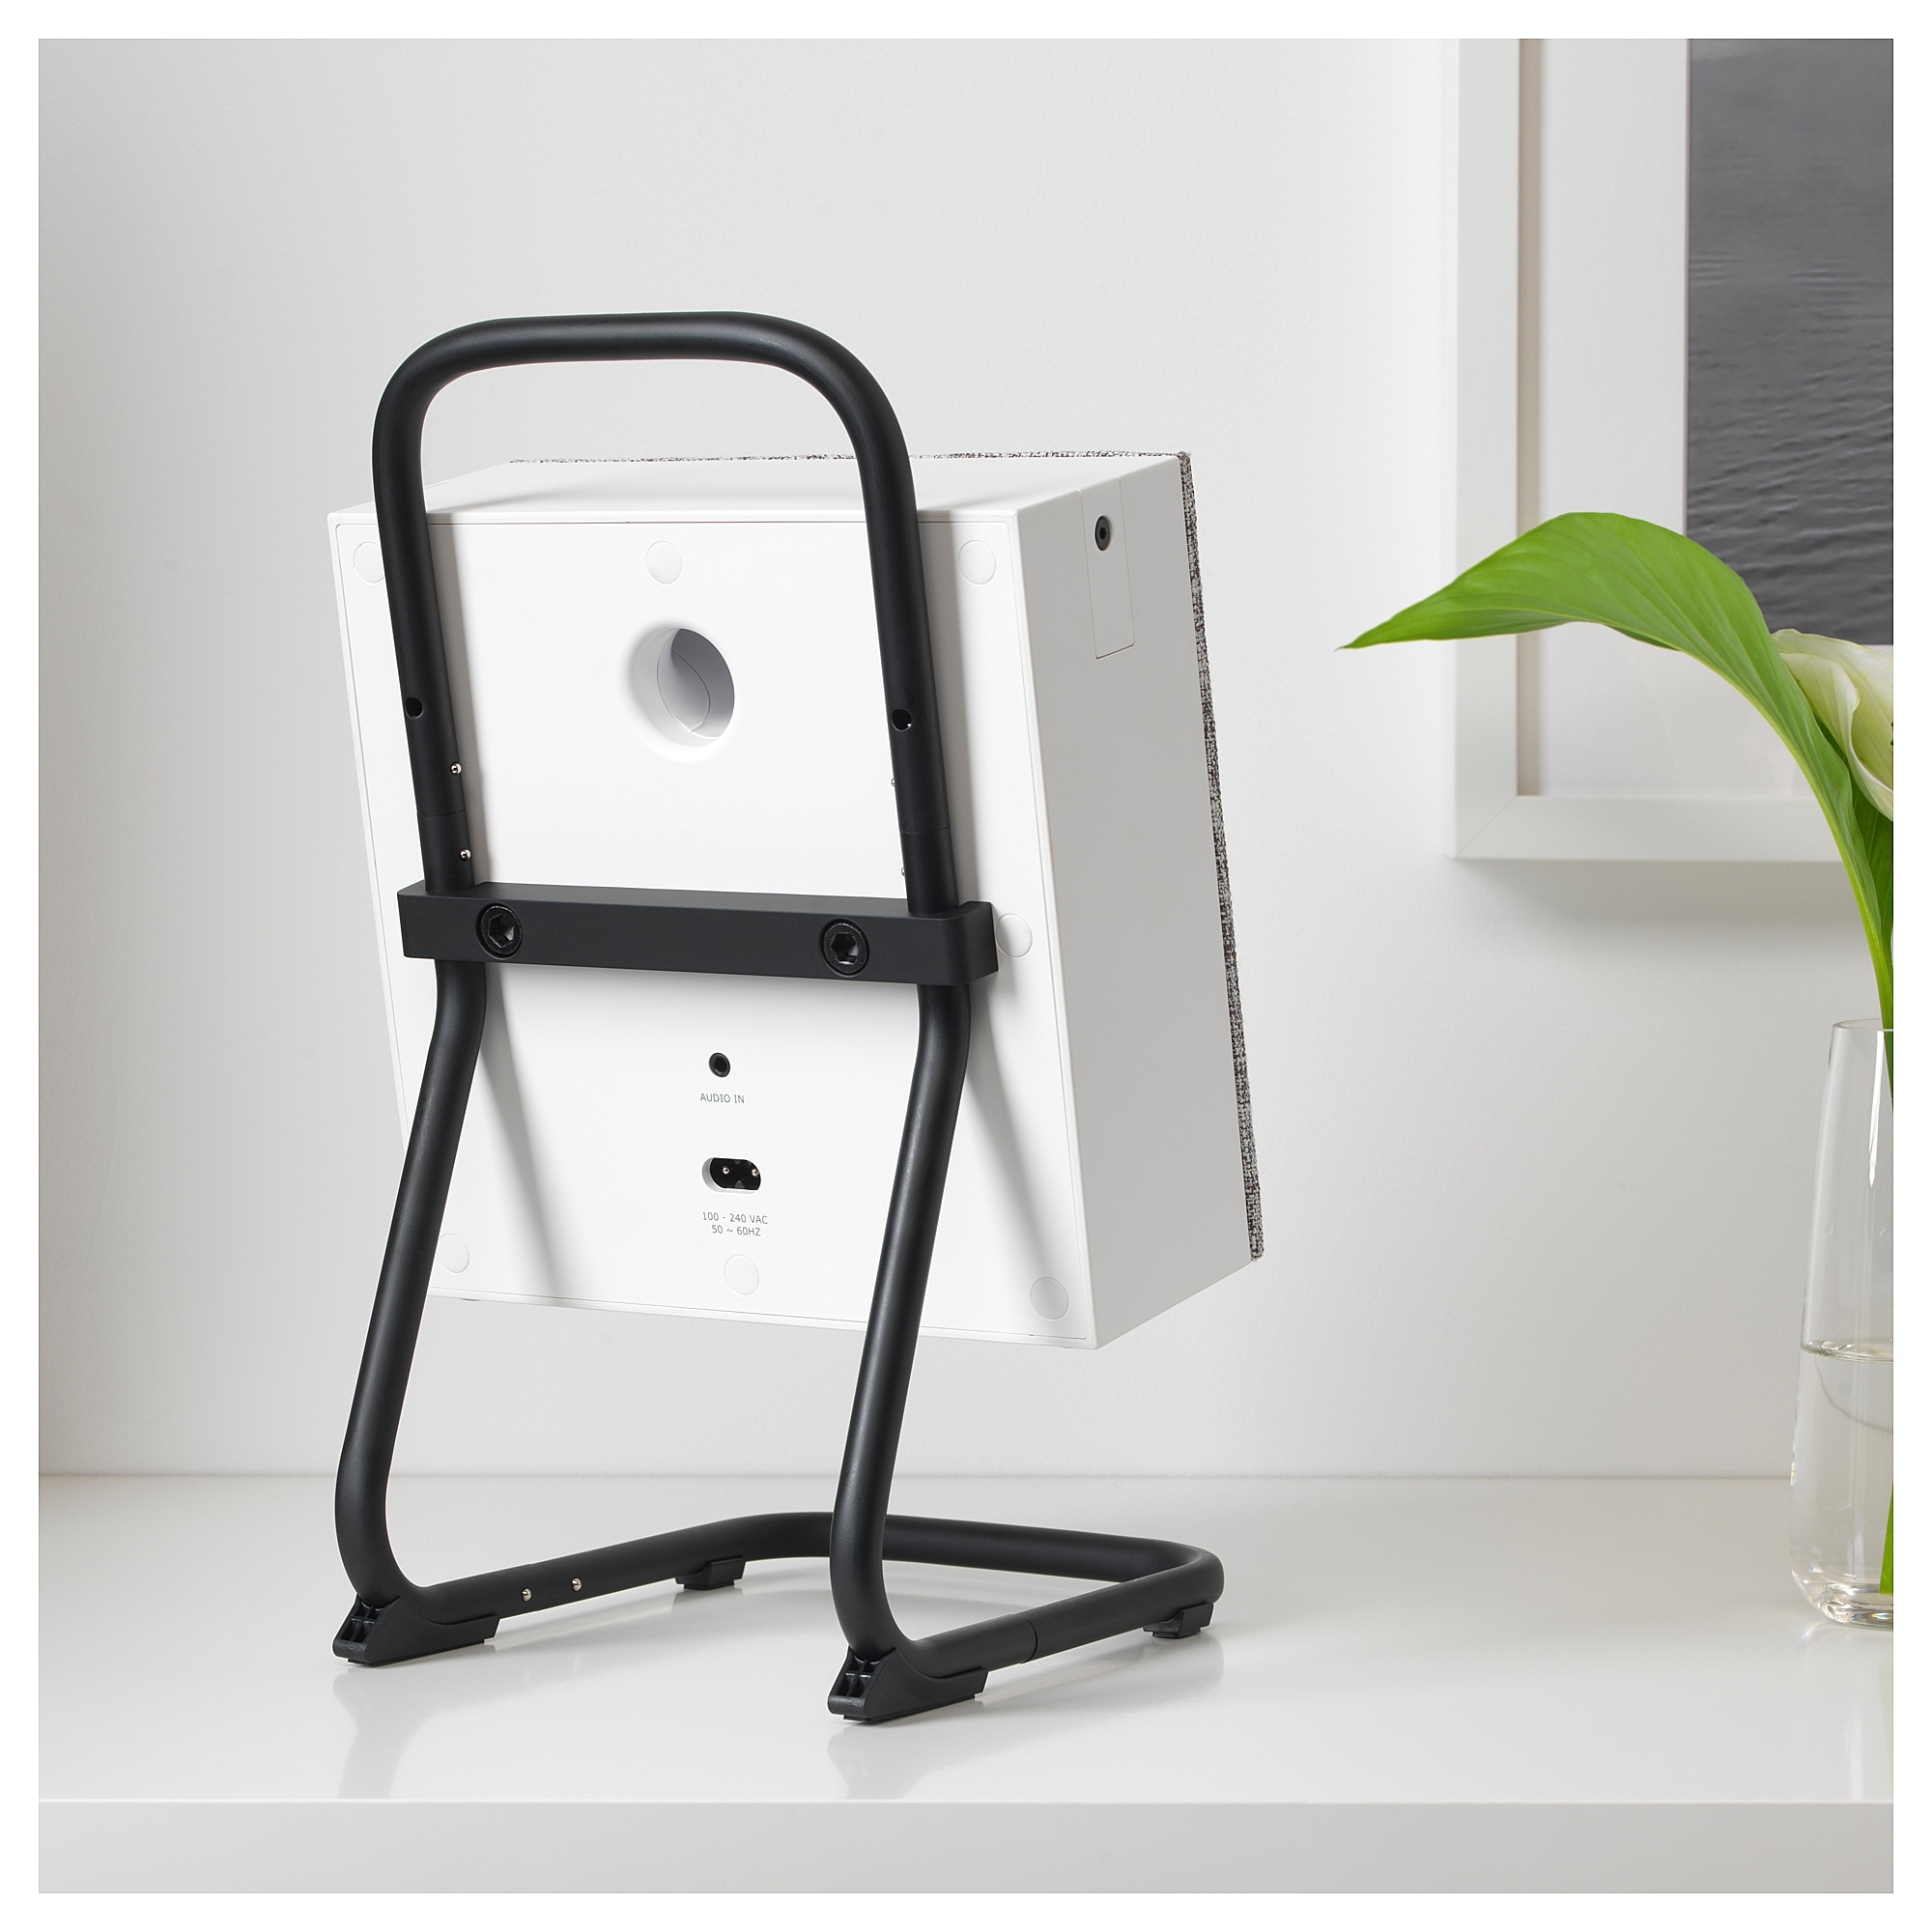 ENEBY Speaker Stand